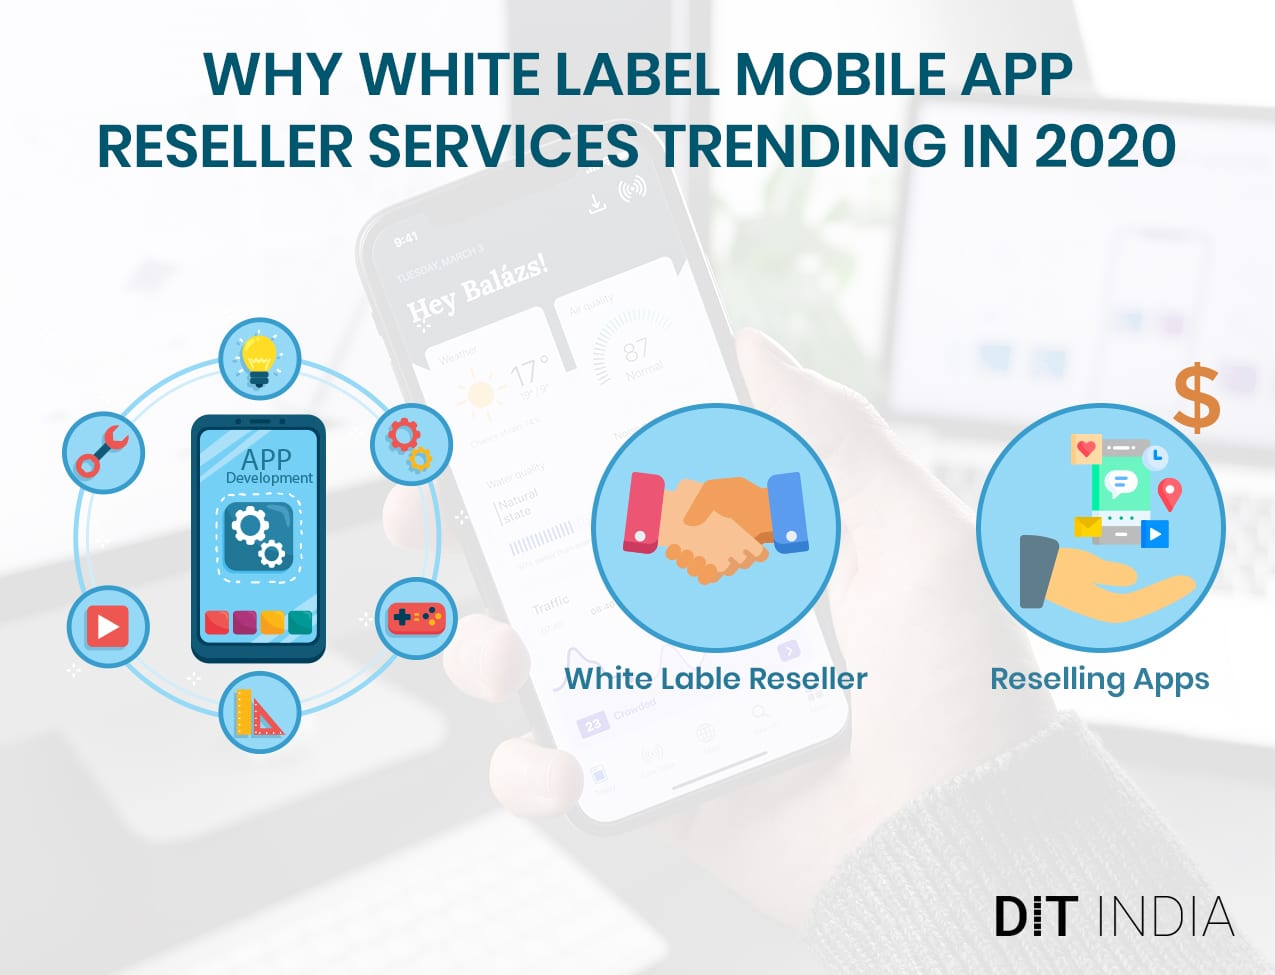 Why White Label Mobile App Reseller Services Trending in 2020